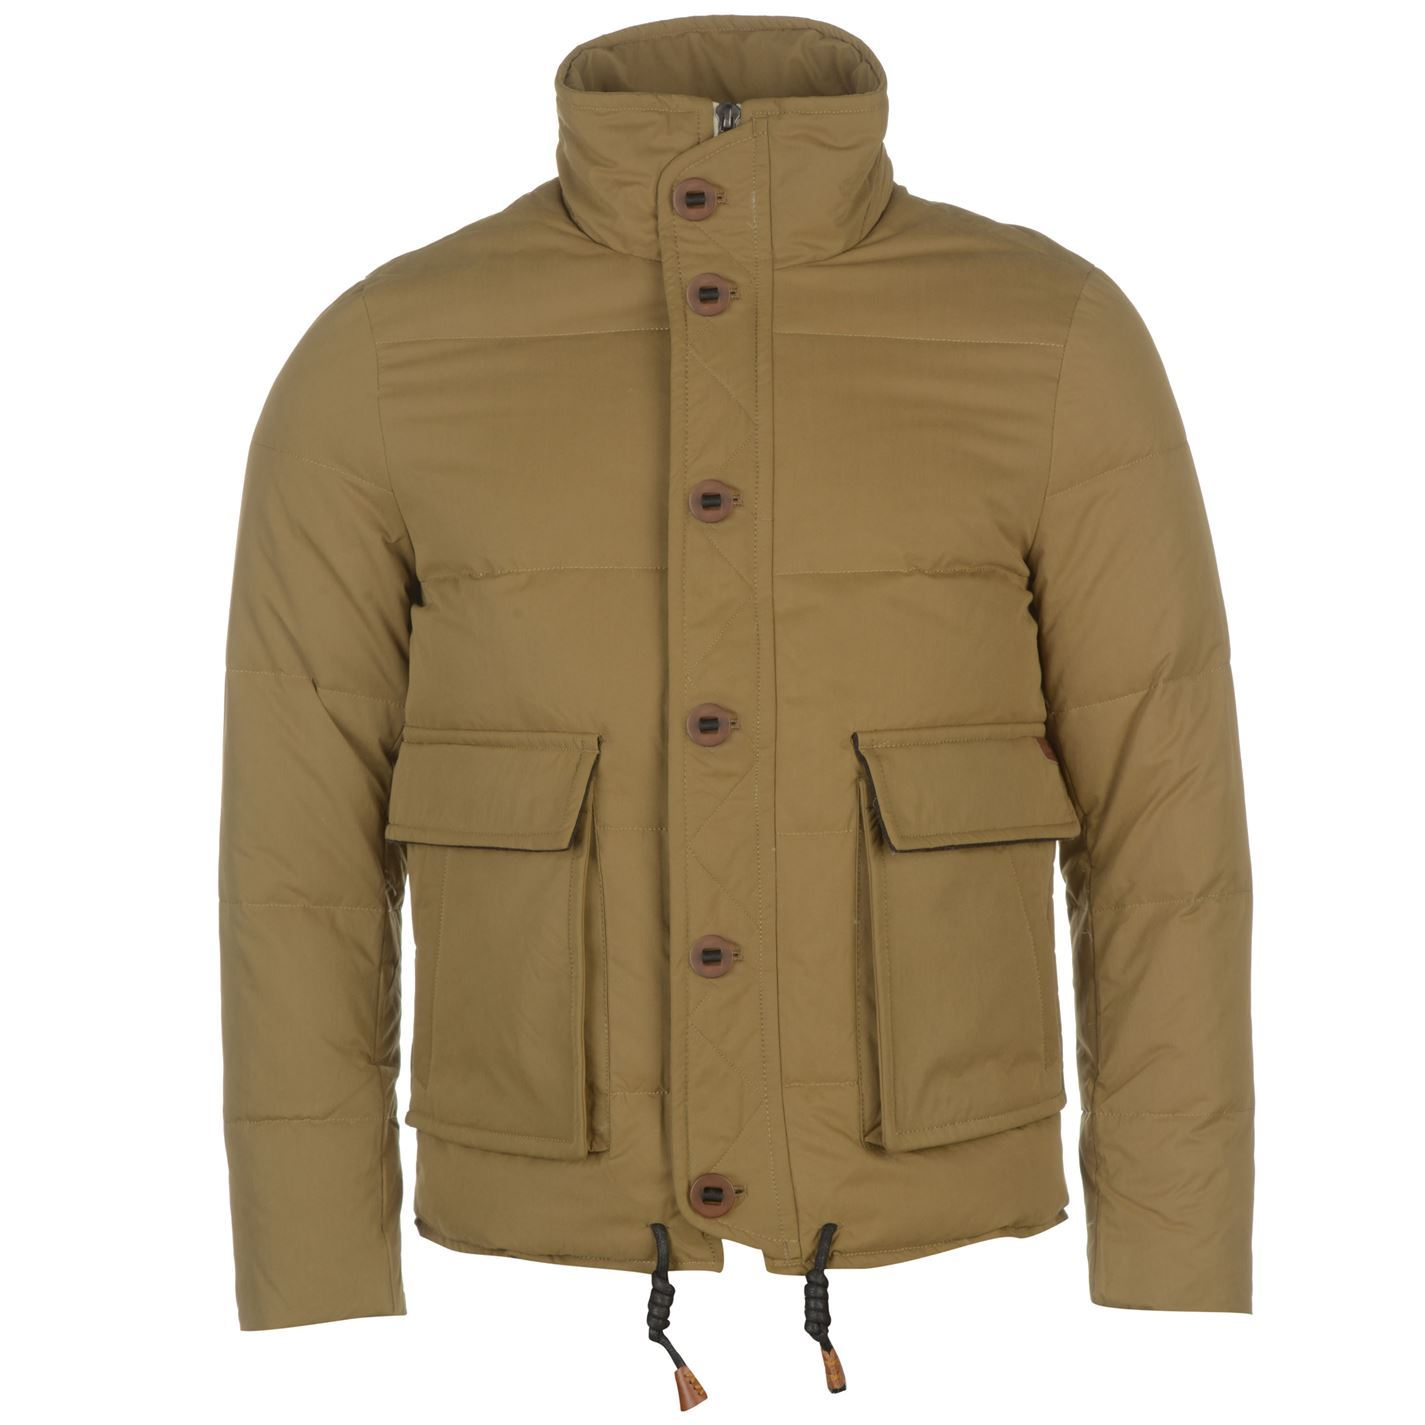 Lee Cooper Mens Gents Heavy Down Jacket Zipped Clothing | EBay